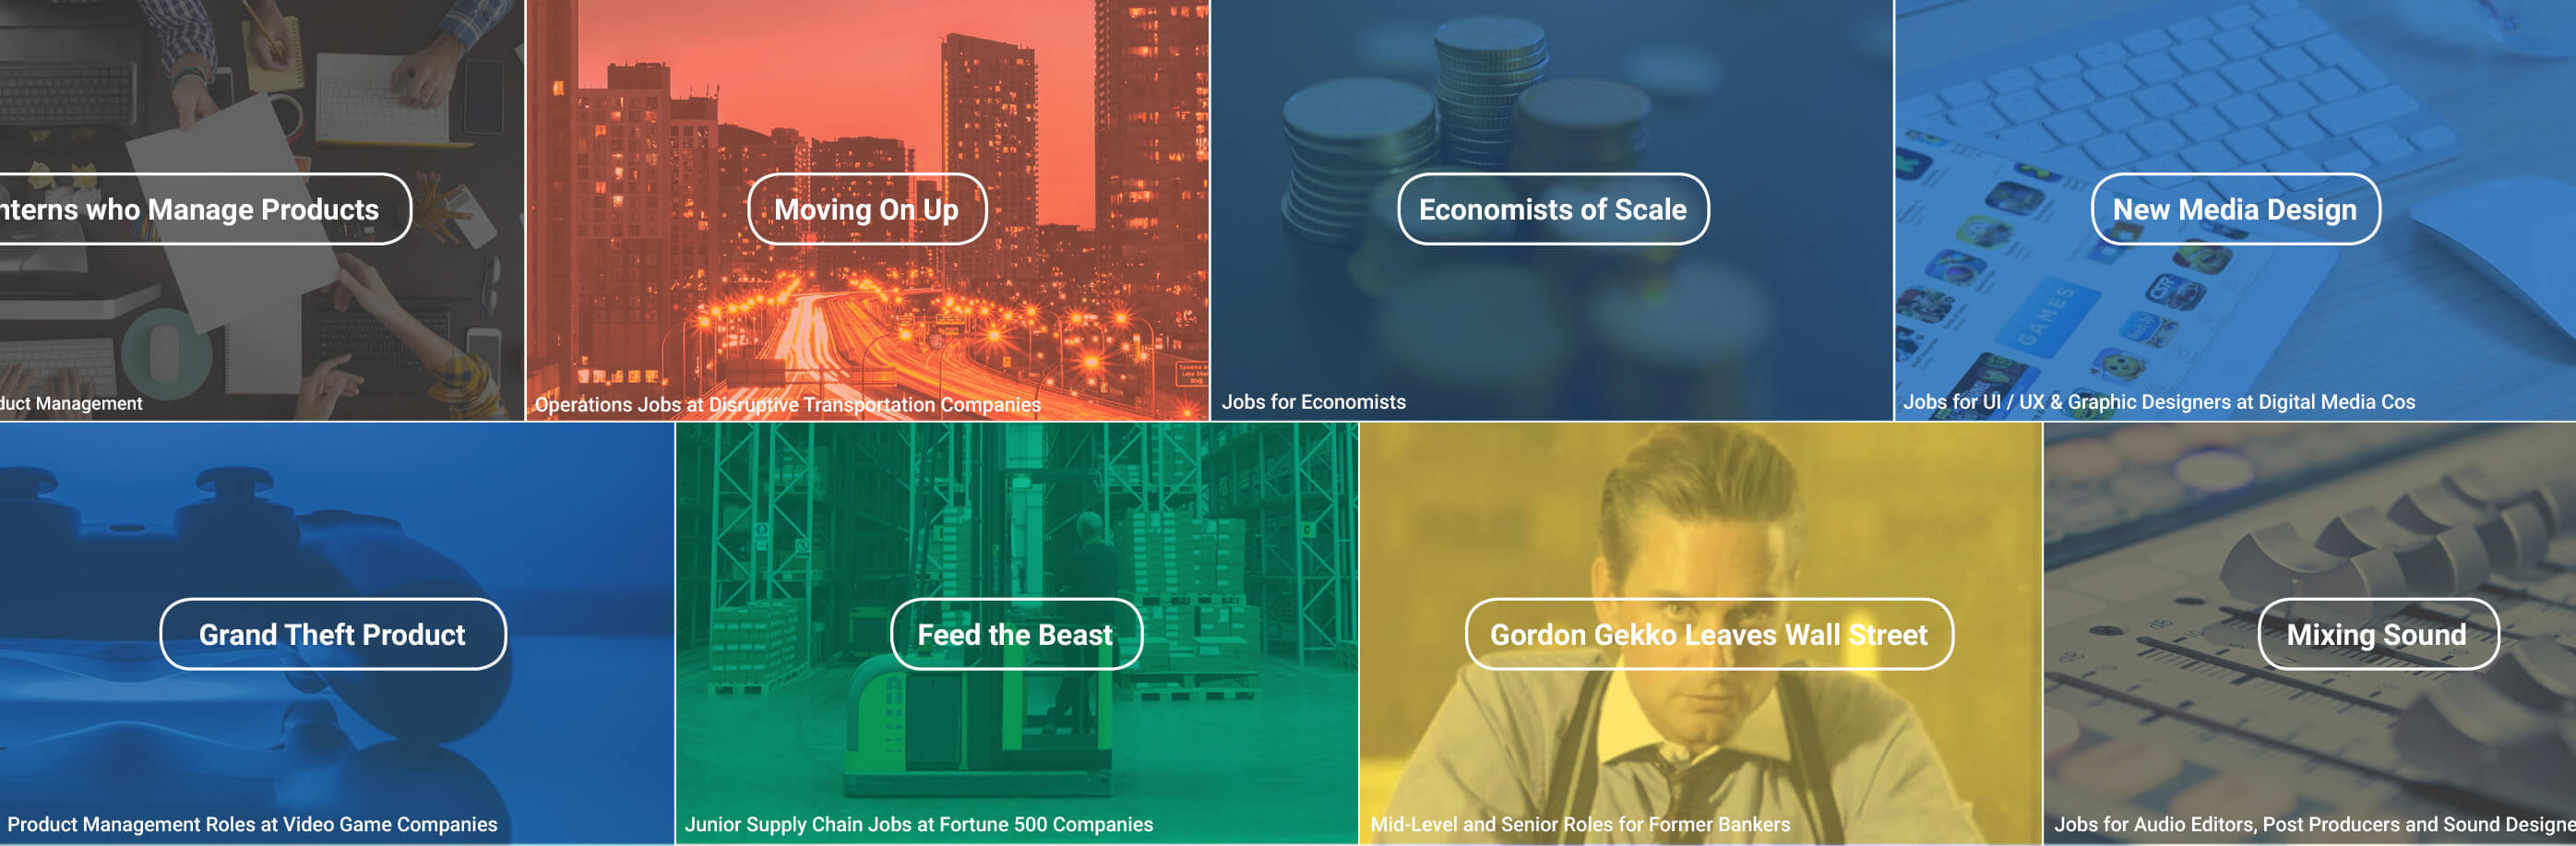 Tapwage images showing different curated job channels including Gordon Gekko goes to Wall Street and Grand Theft Product